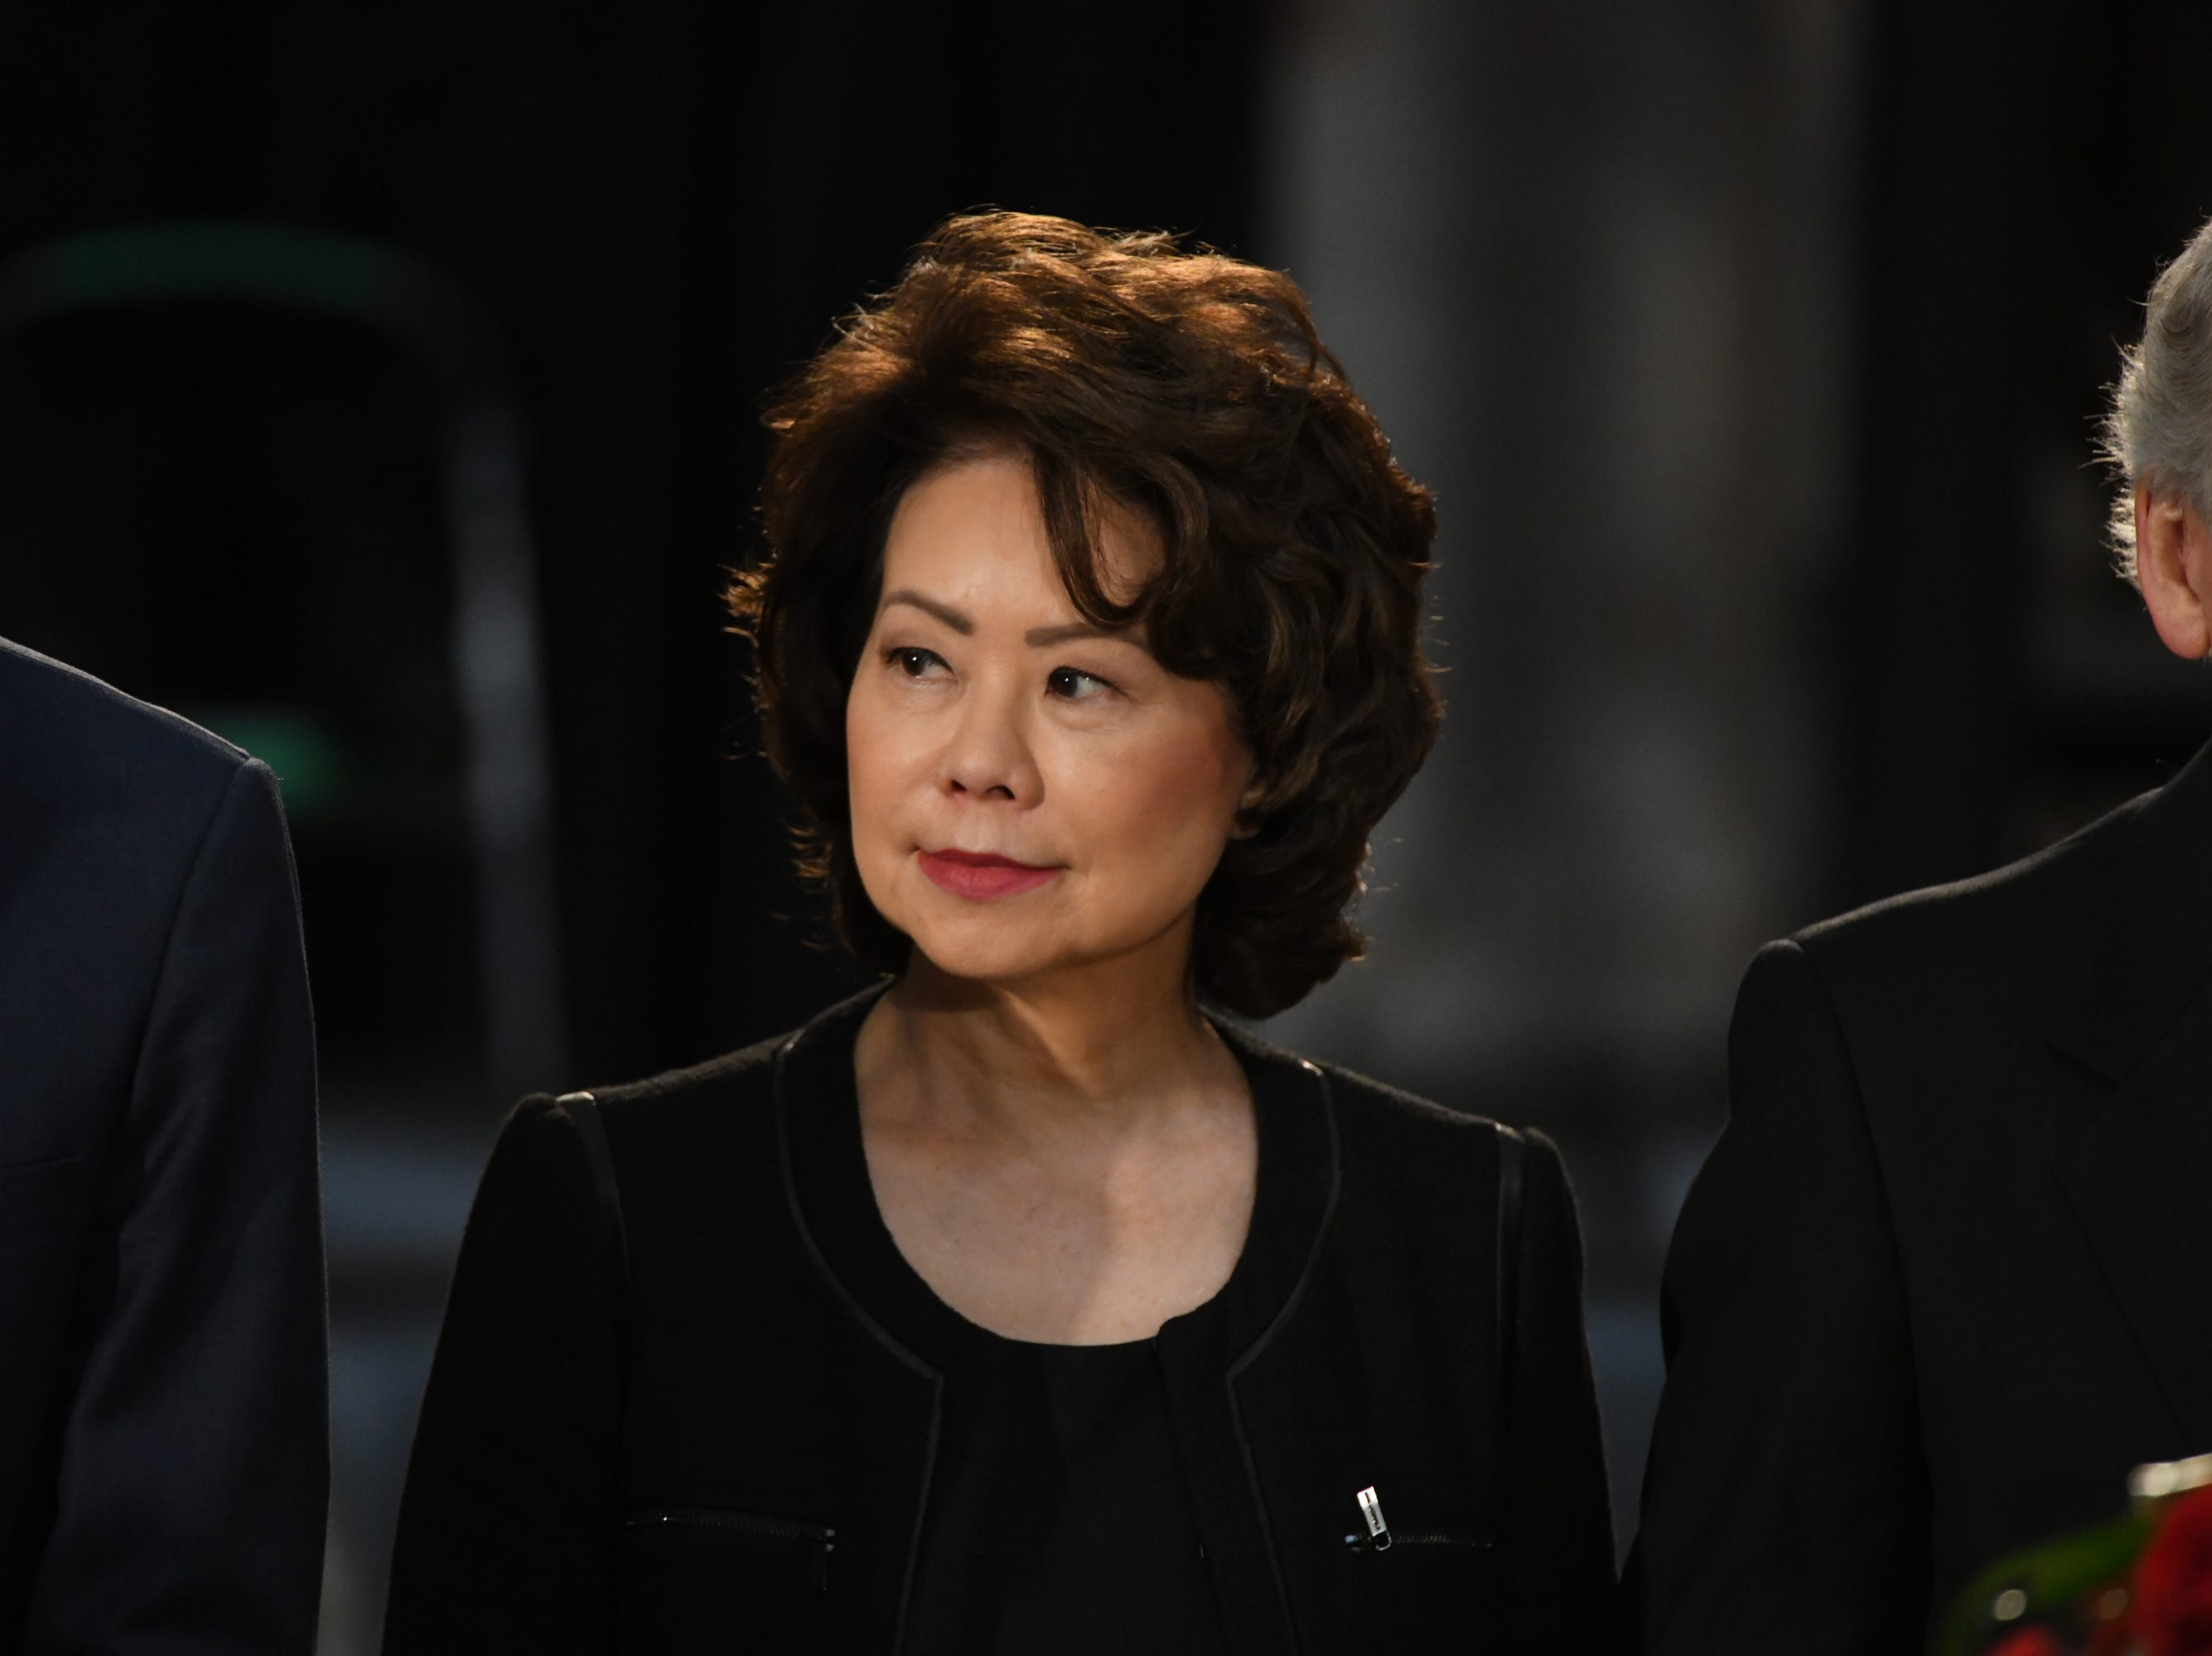 8/31/18 11:38:04 AM -- Washington, DC, U.S.A  -- Secretary of Transportation Elaine Chao pays her respects as the body of John McCain lies in state at the U.S. Capitol in Washington on Aug. 31, 2018 in Washington. Sen. McCain died on Aug. 25. --    Photo by Jasper Colt, USA TODAY Staff